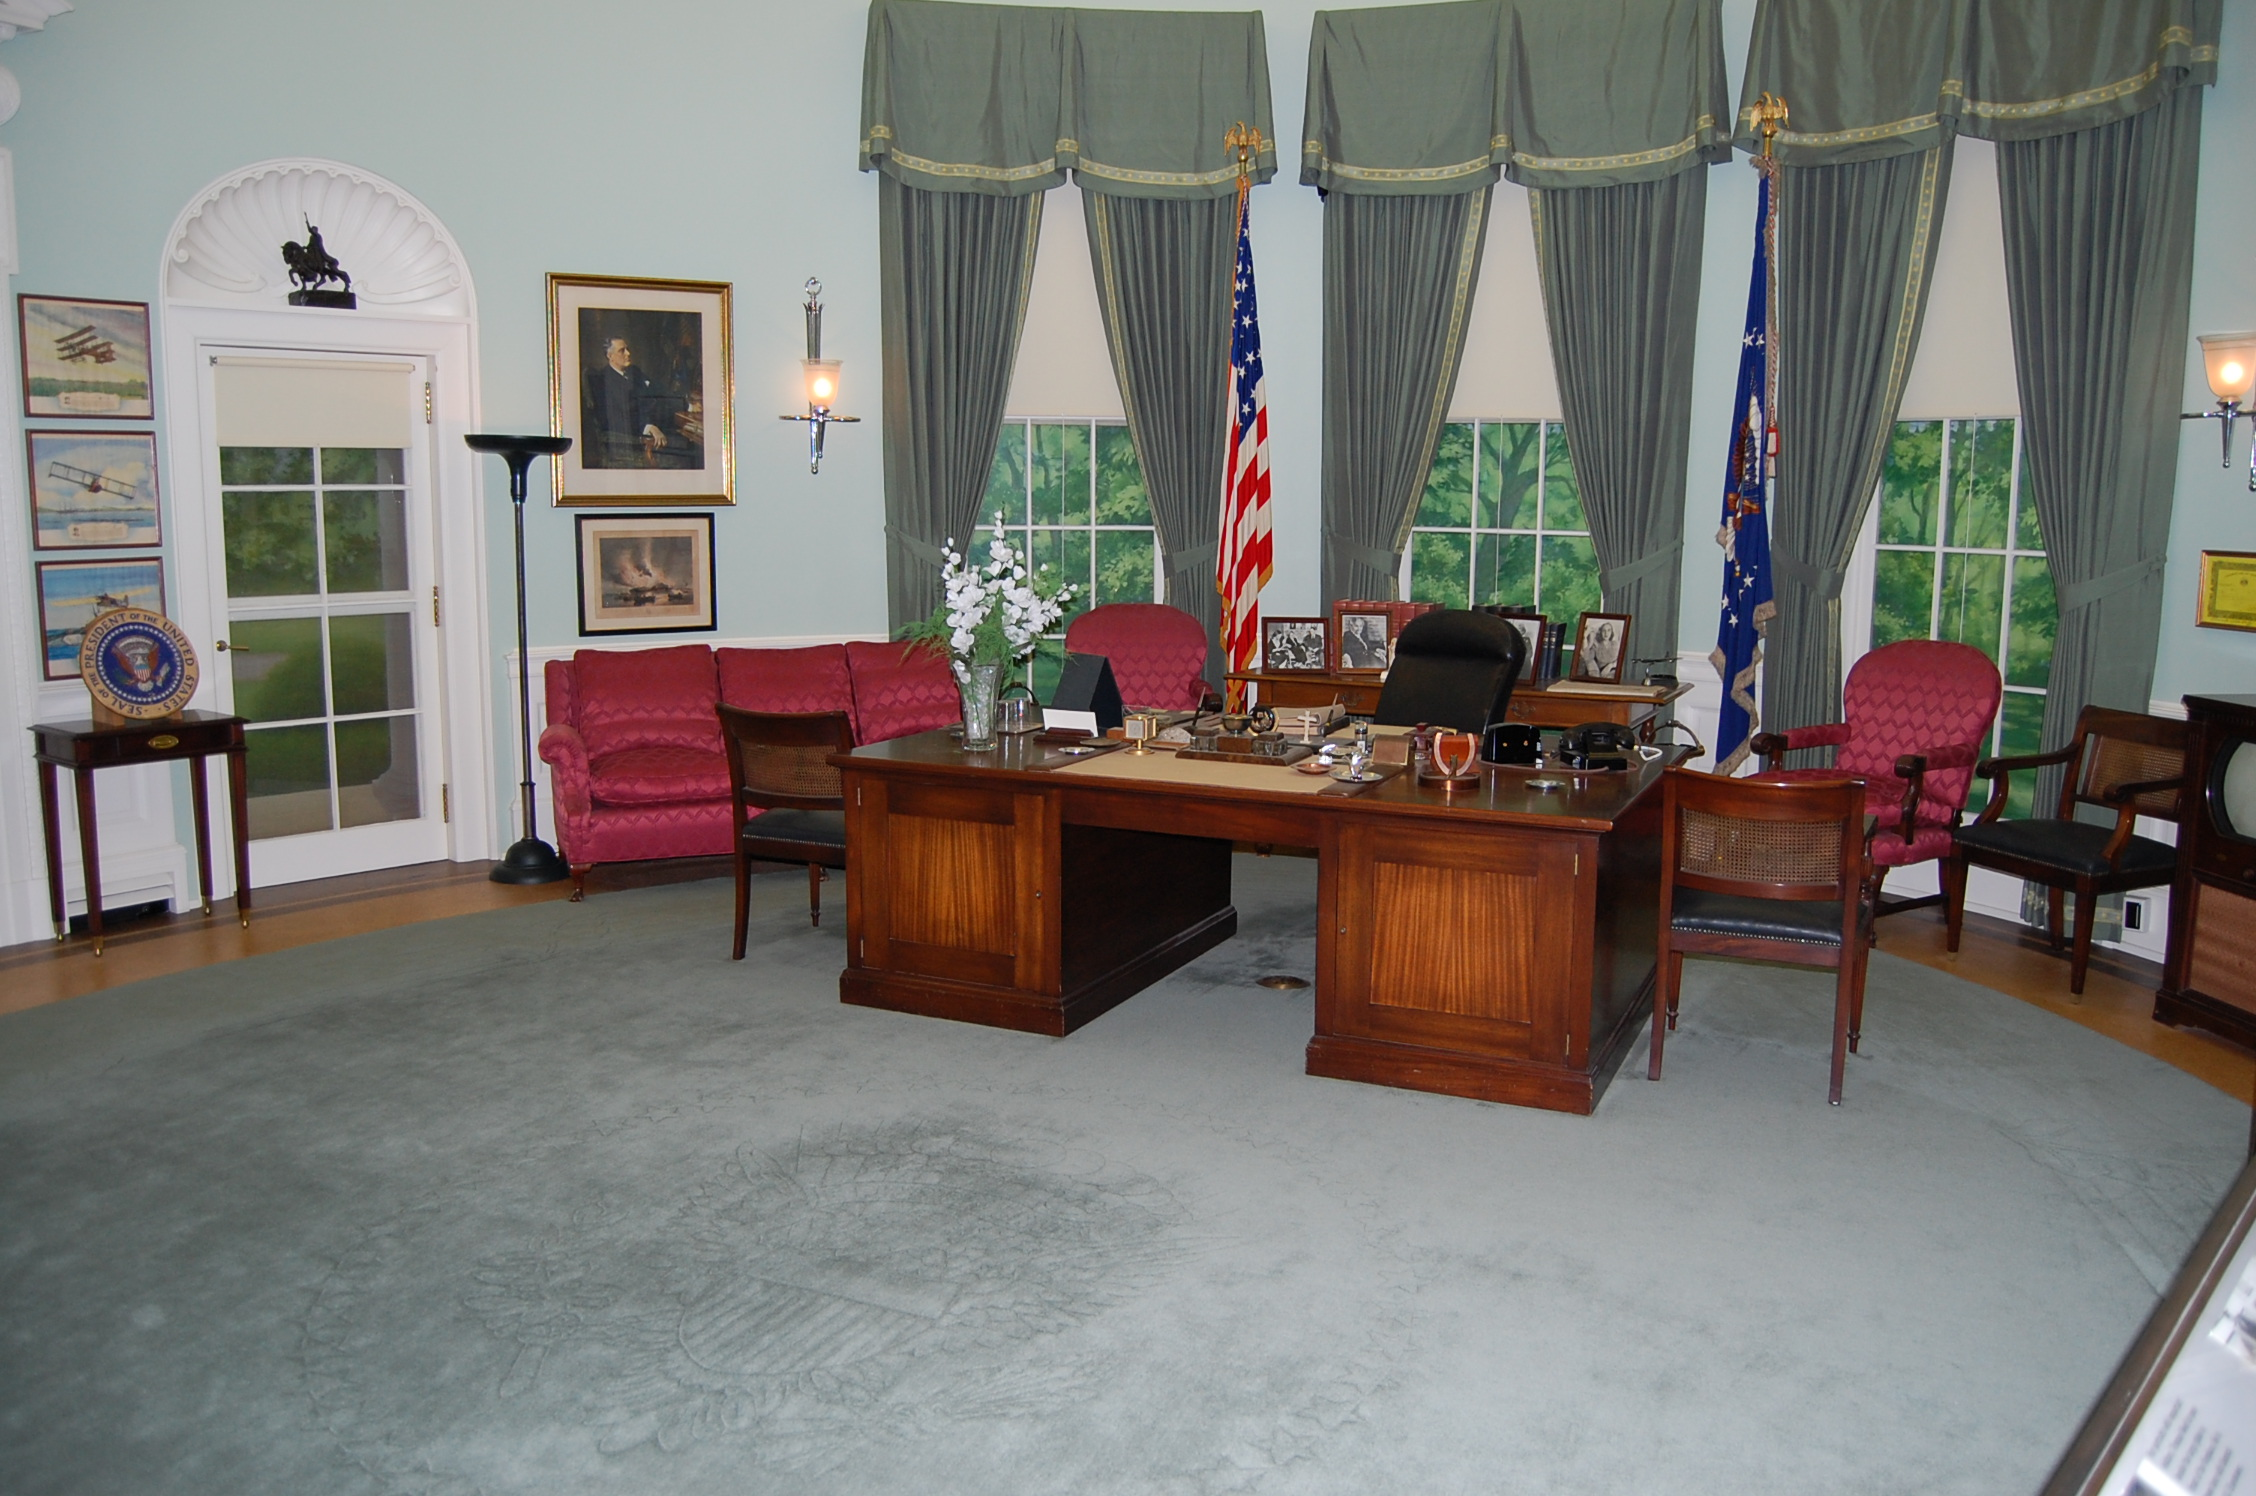 Obama Resolute Desk The Changing Oval Office From Fdr To Obama Letawookieewin